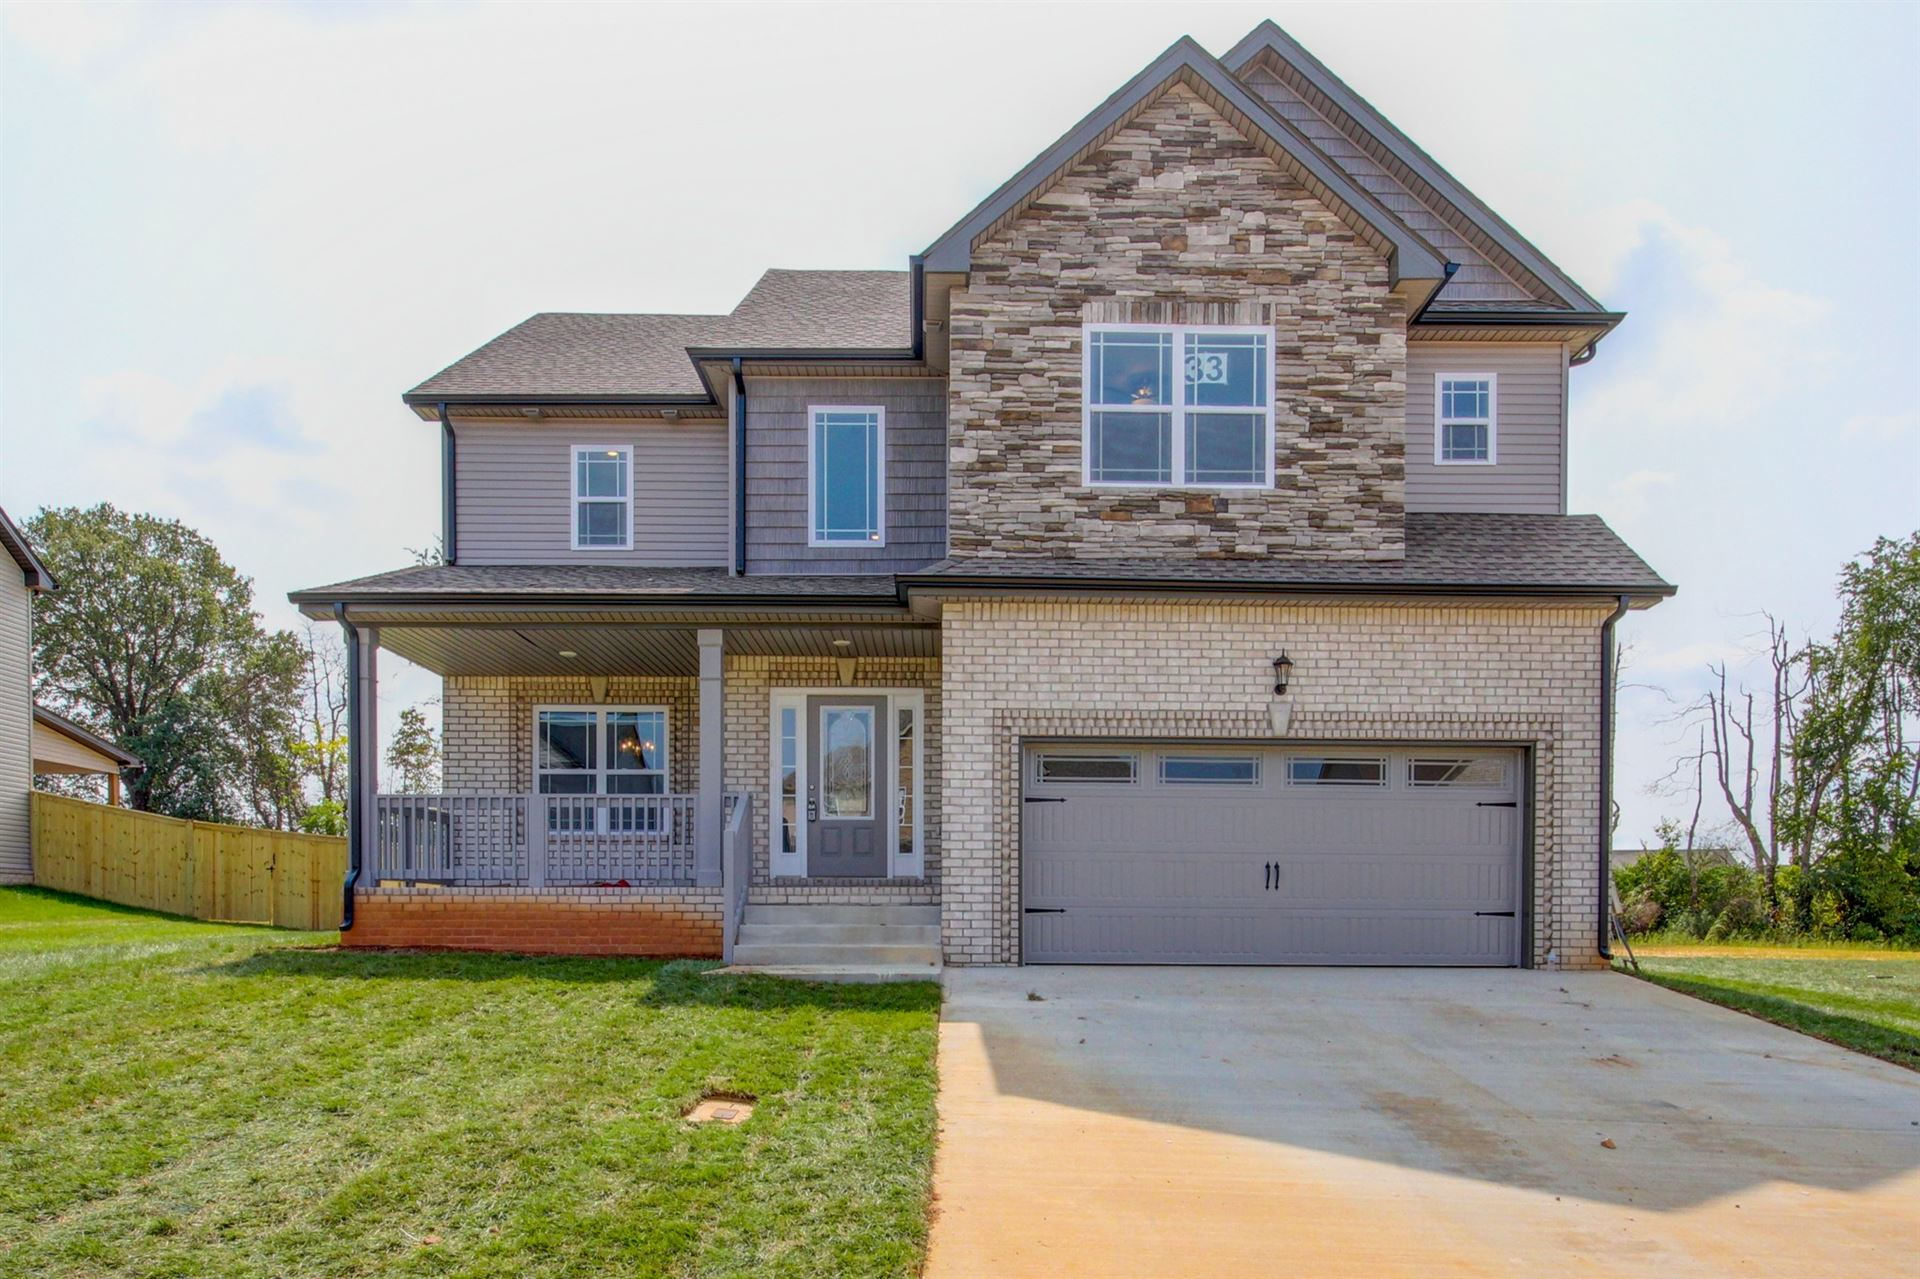 33 Reserve at Hickory Wild, Clarksville, TN 37043 - MLS#: 2126657